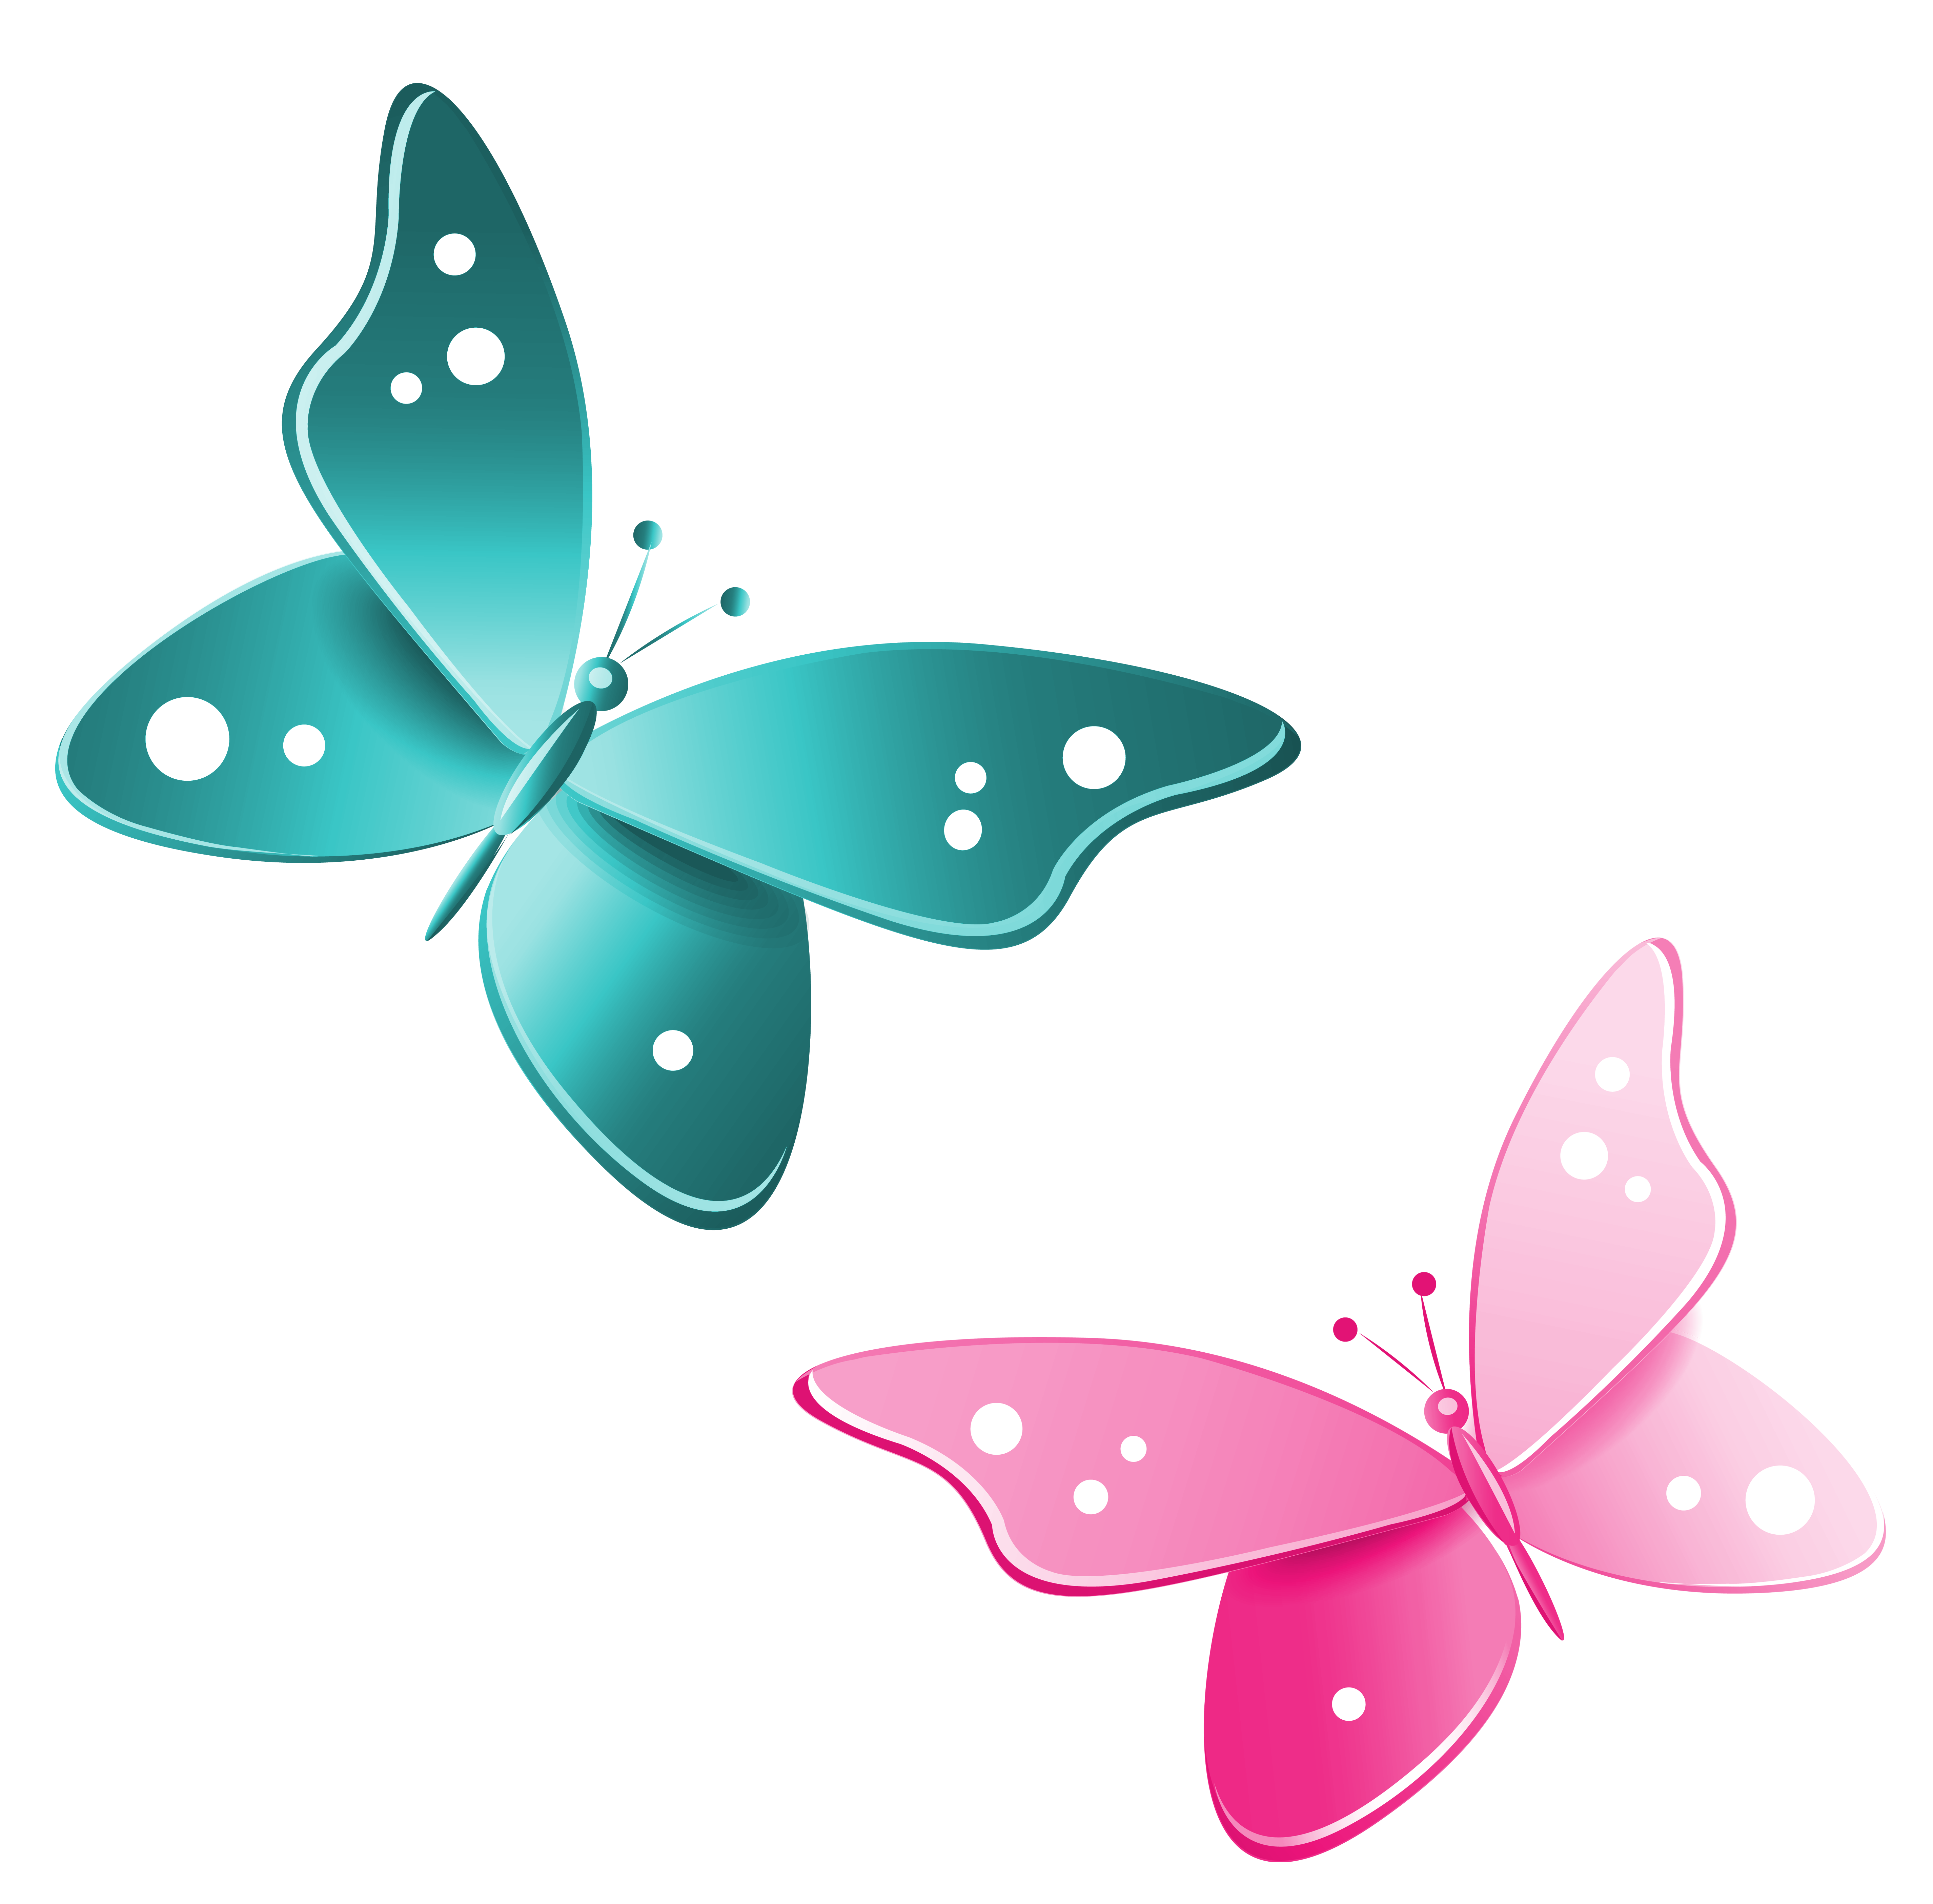 Green And Blue Bedroom Butterflies Clipart Border Free Download Best